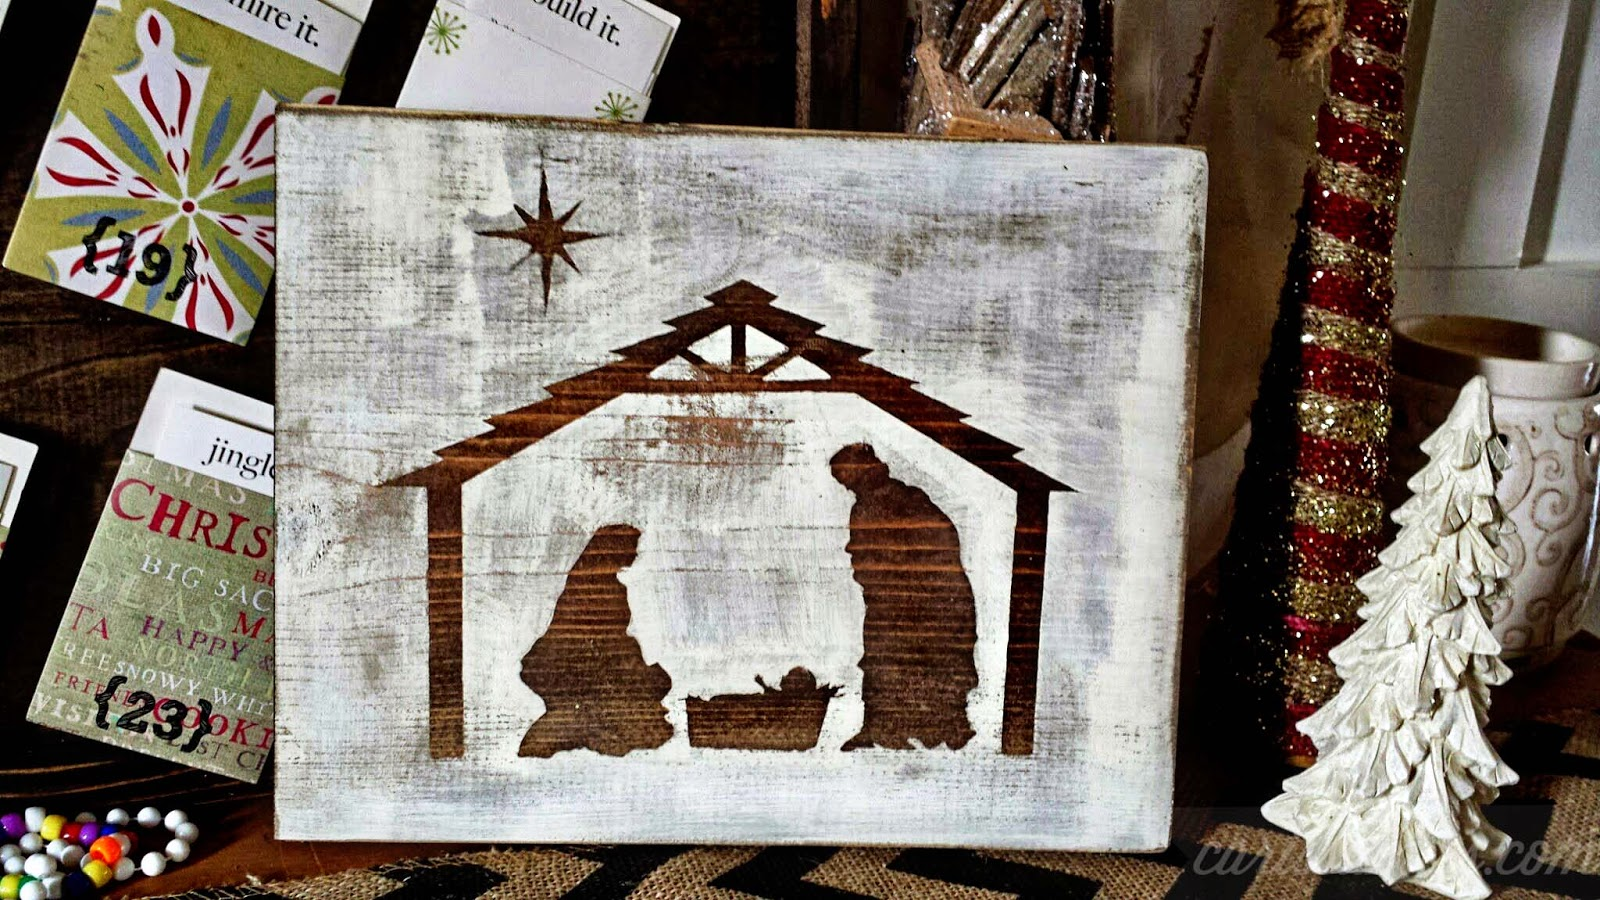 Carissa Miss: Simple Wood Nativity